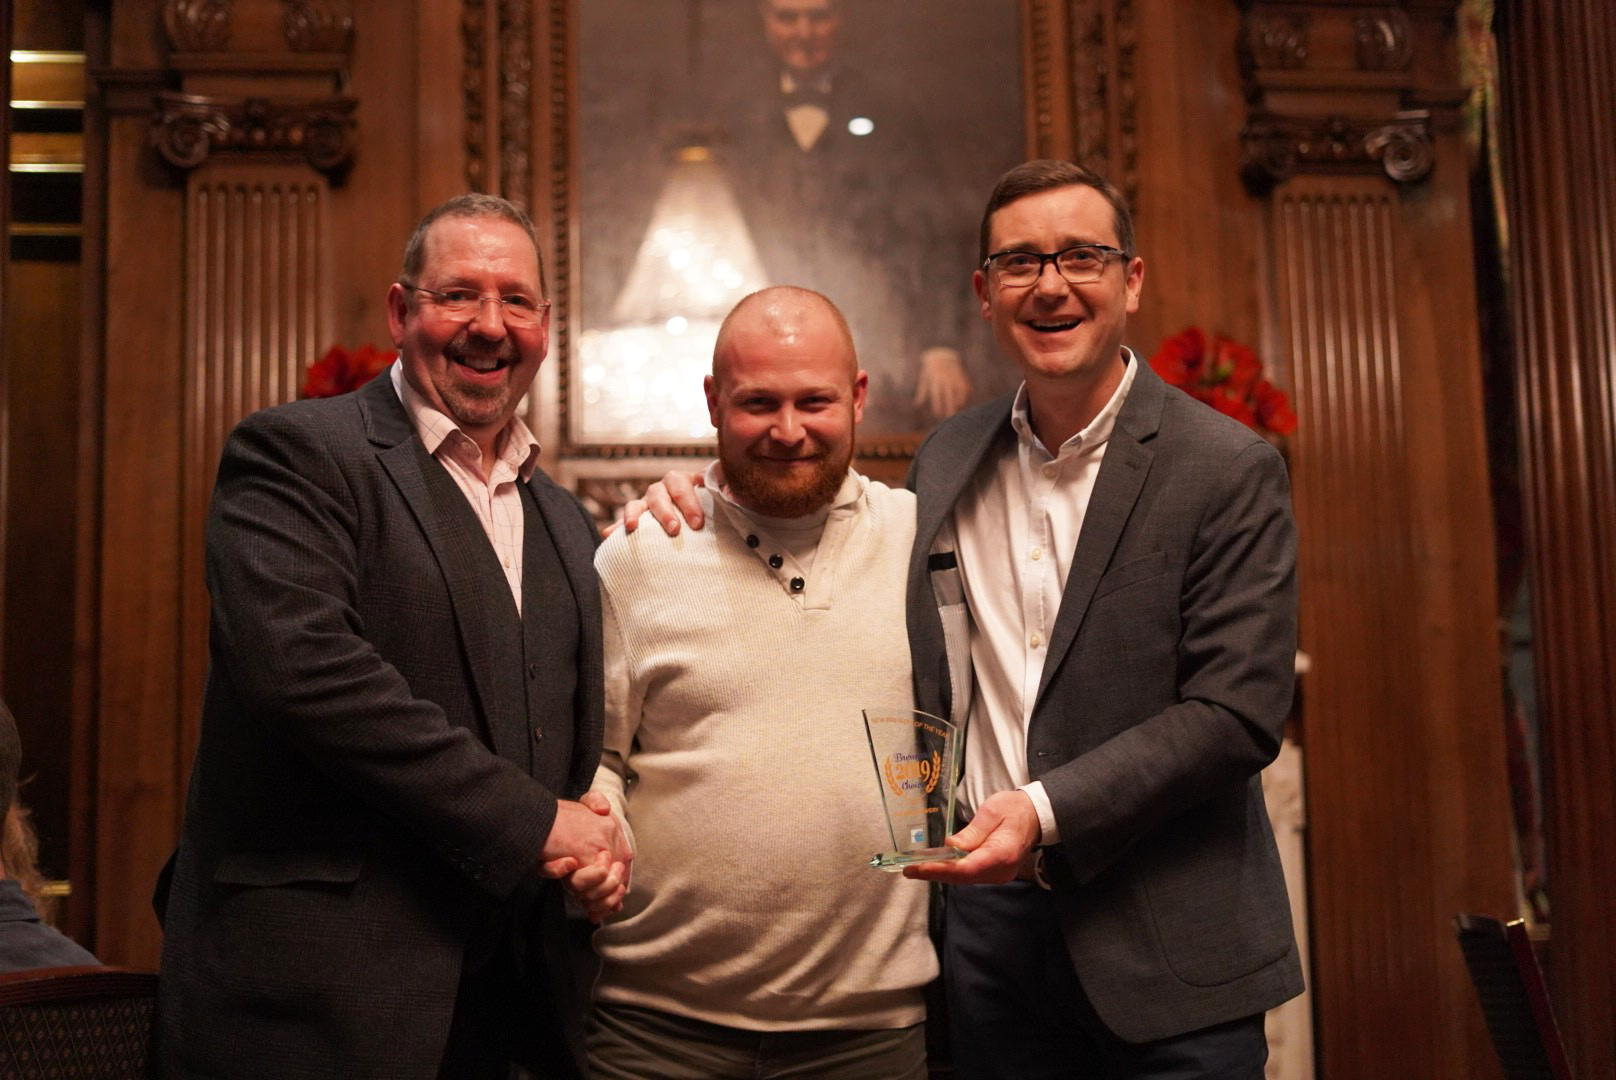 New Brewery of the Year 2019 award presentation